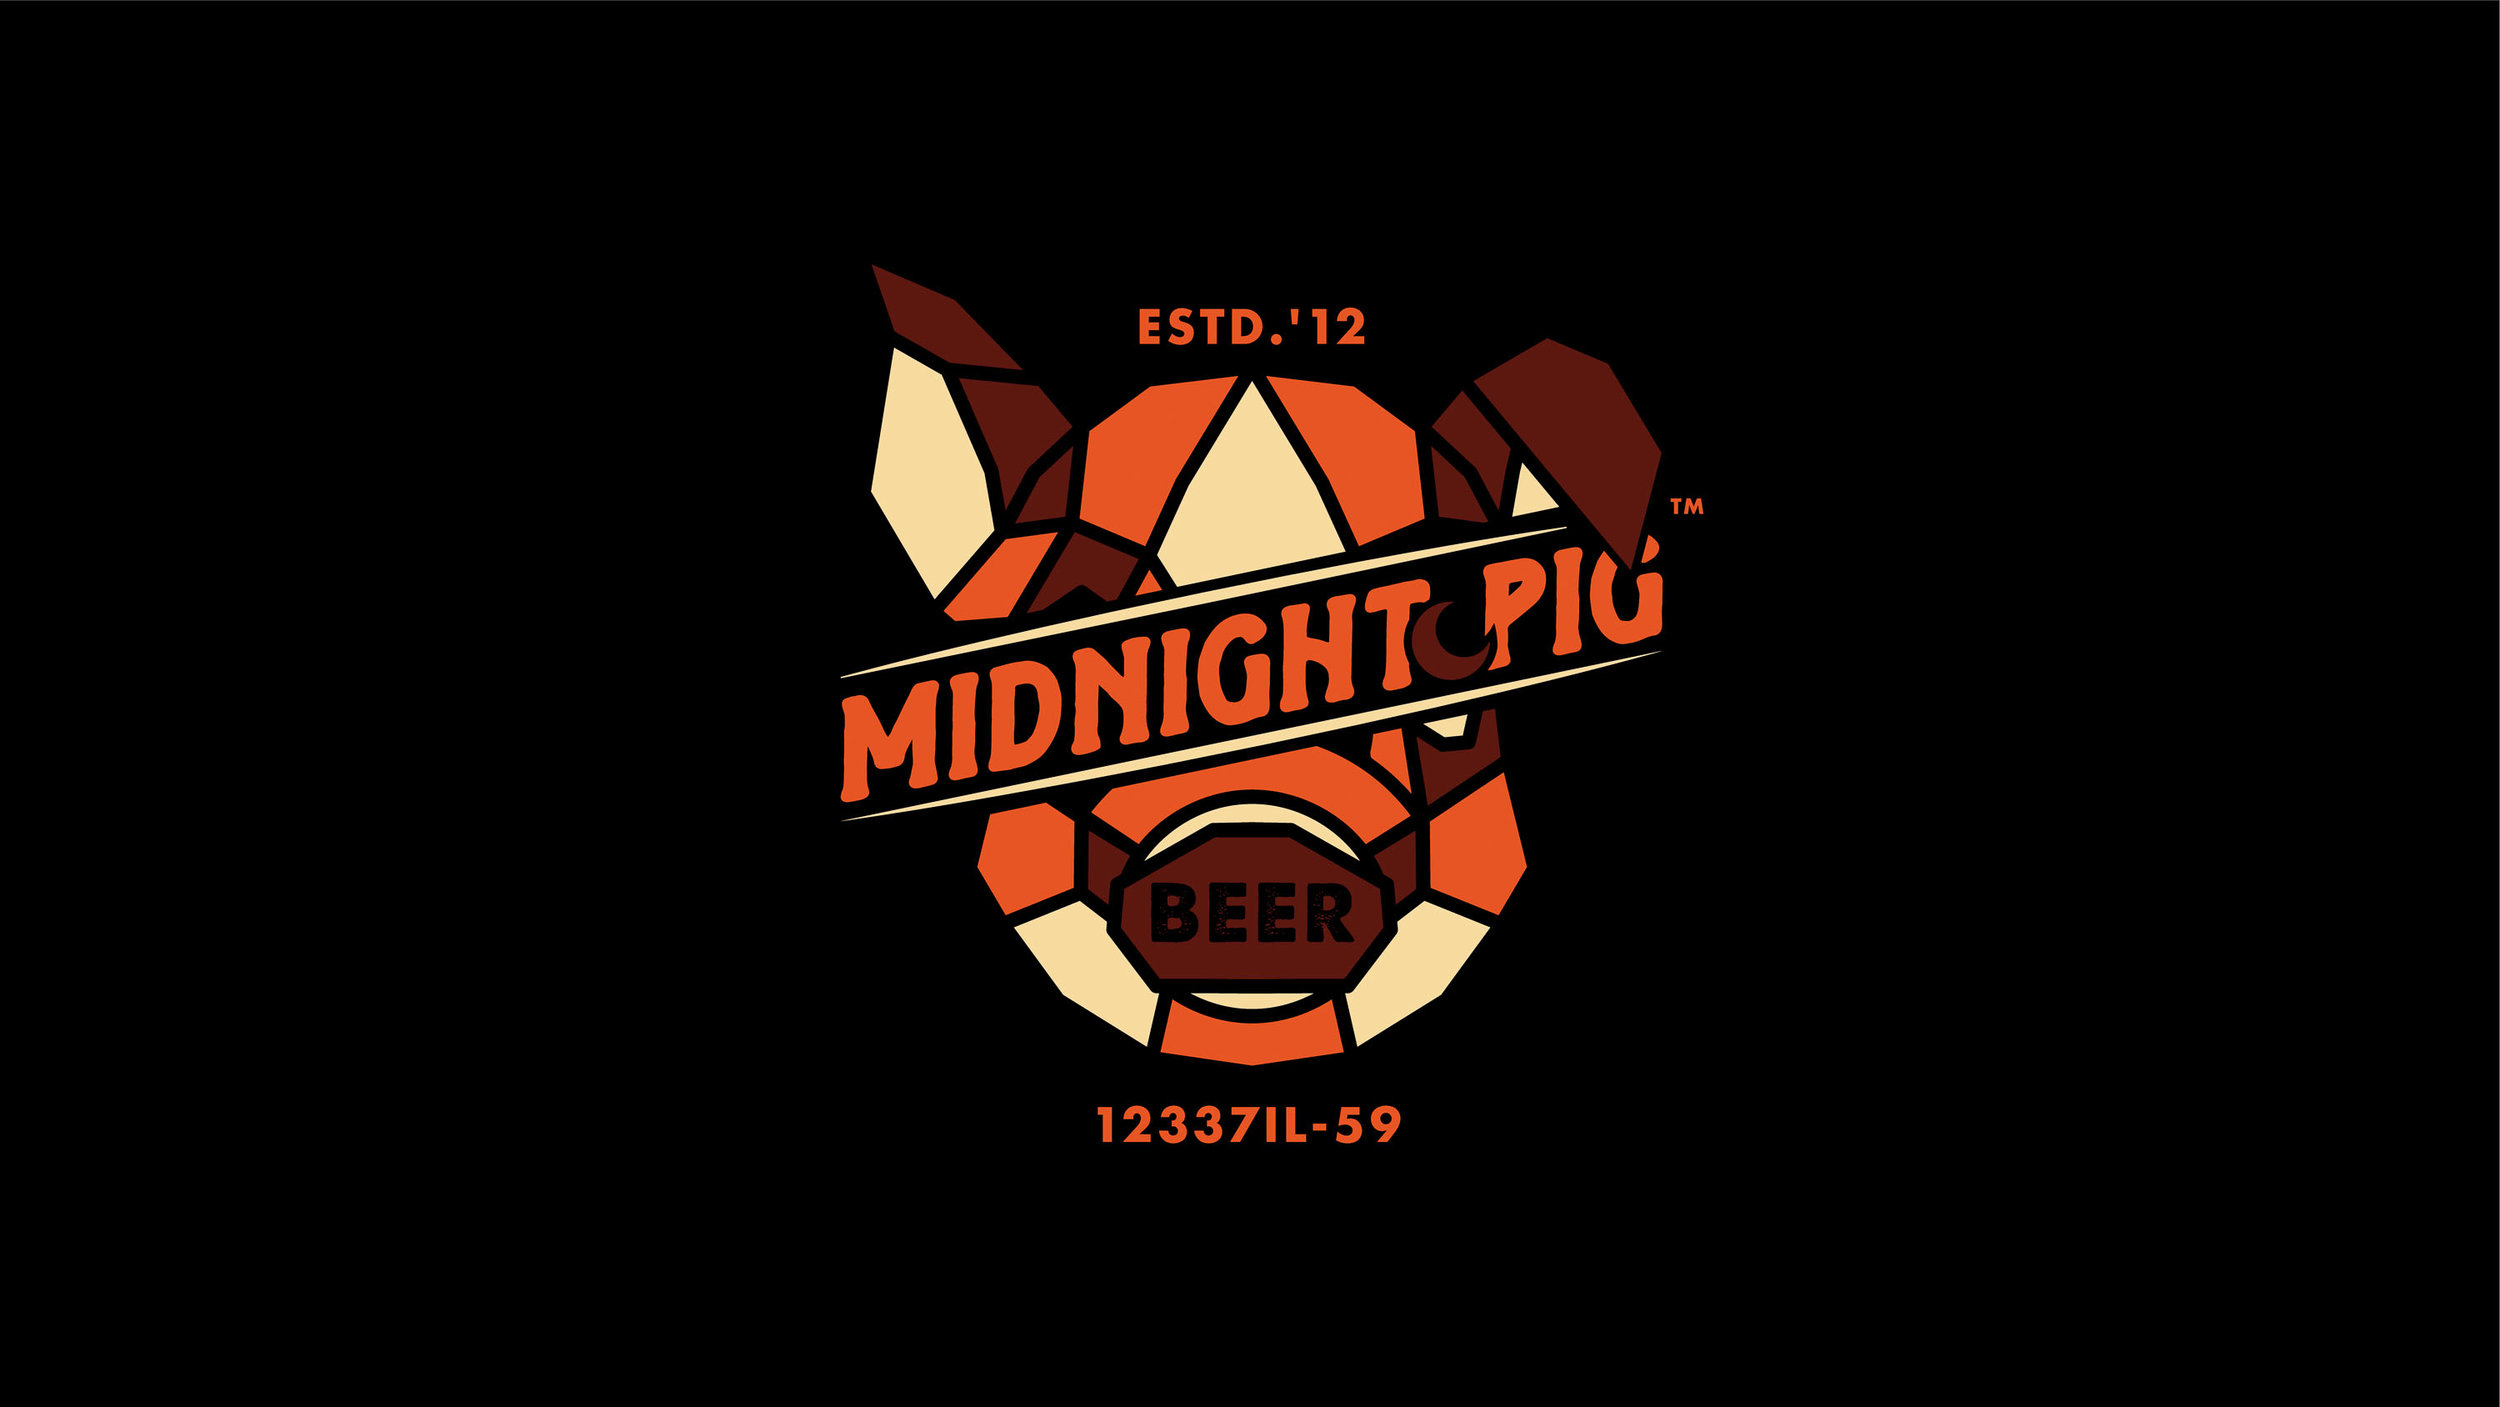 GERTRUDE-INC-Midnight-Pig-Beer.jpg